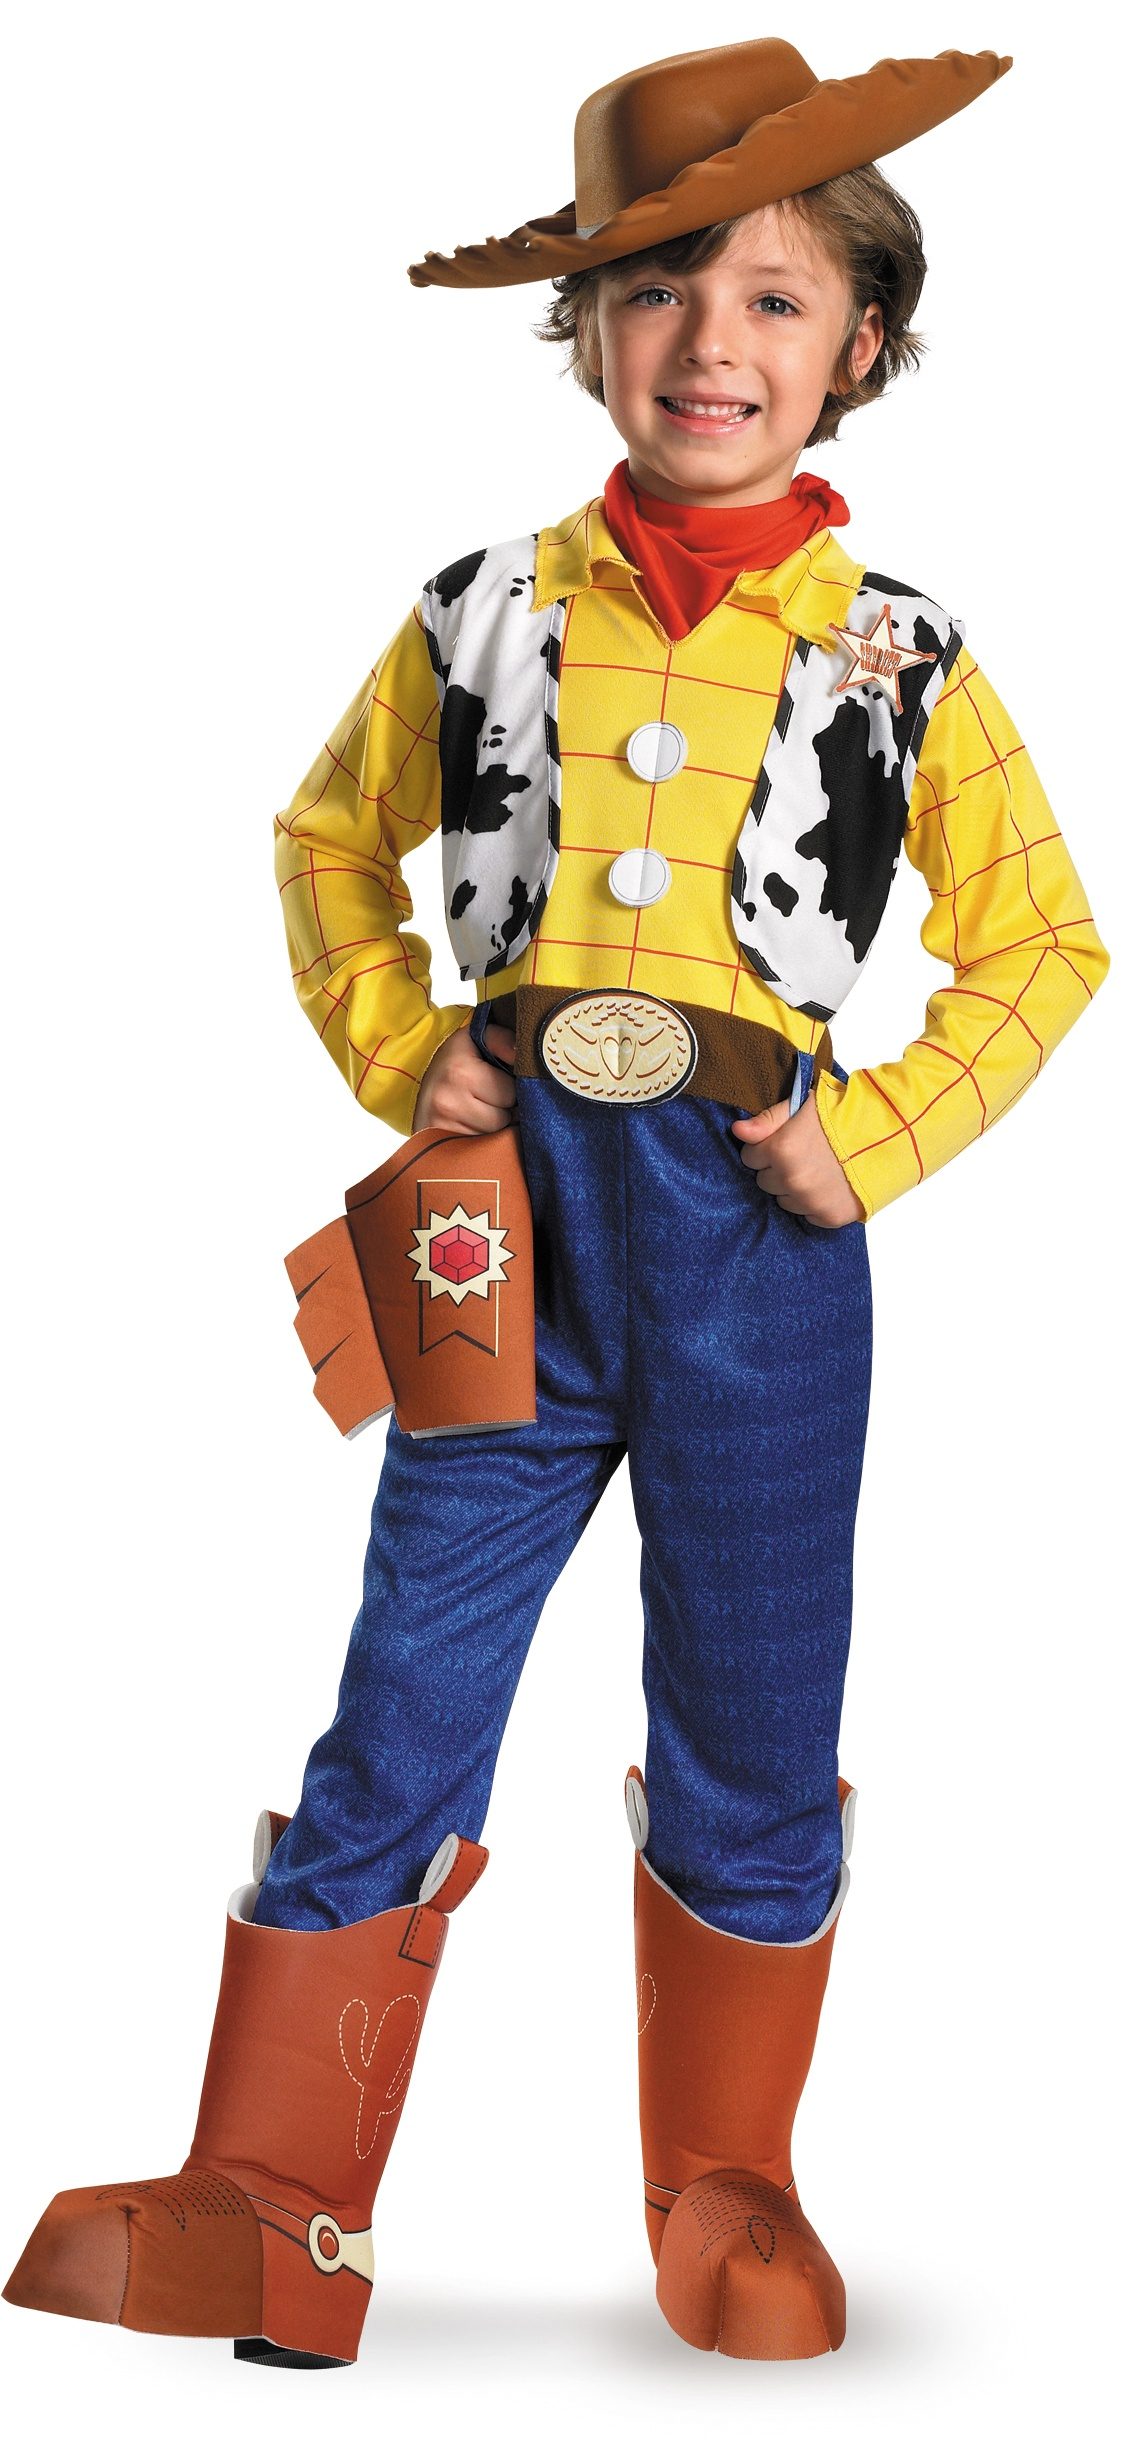 ... Toy Story Costumes >> Disney Toy Story Woody Deluxe Kids Cowboy